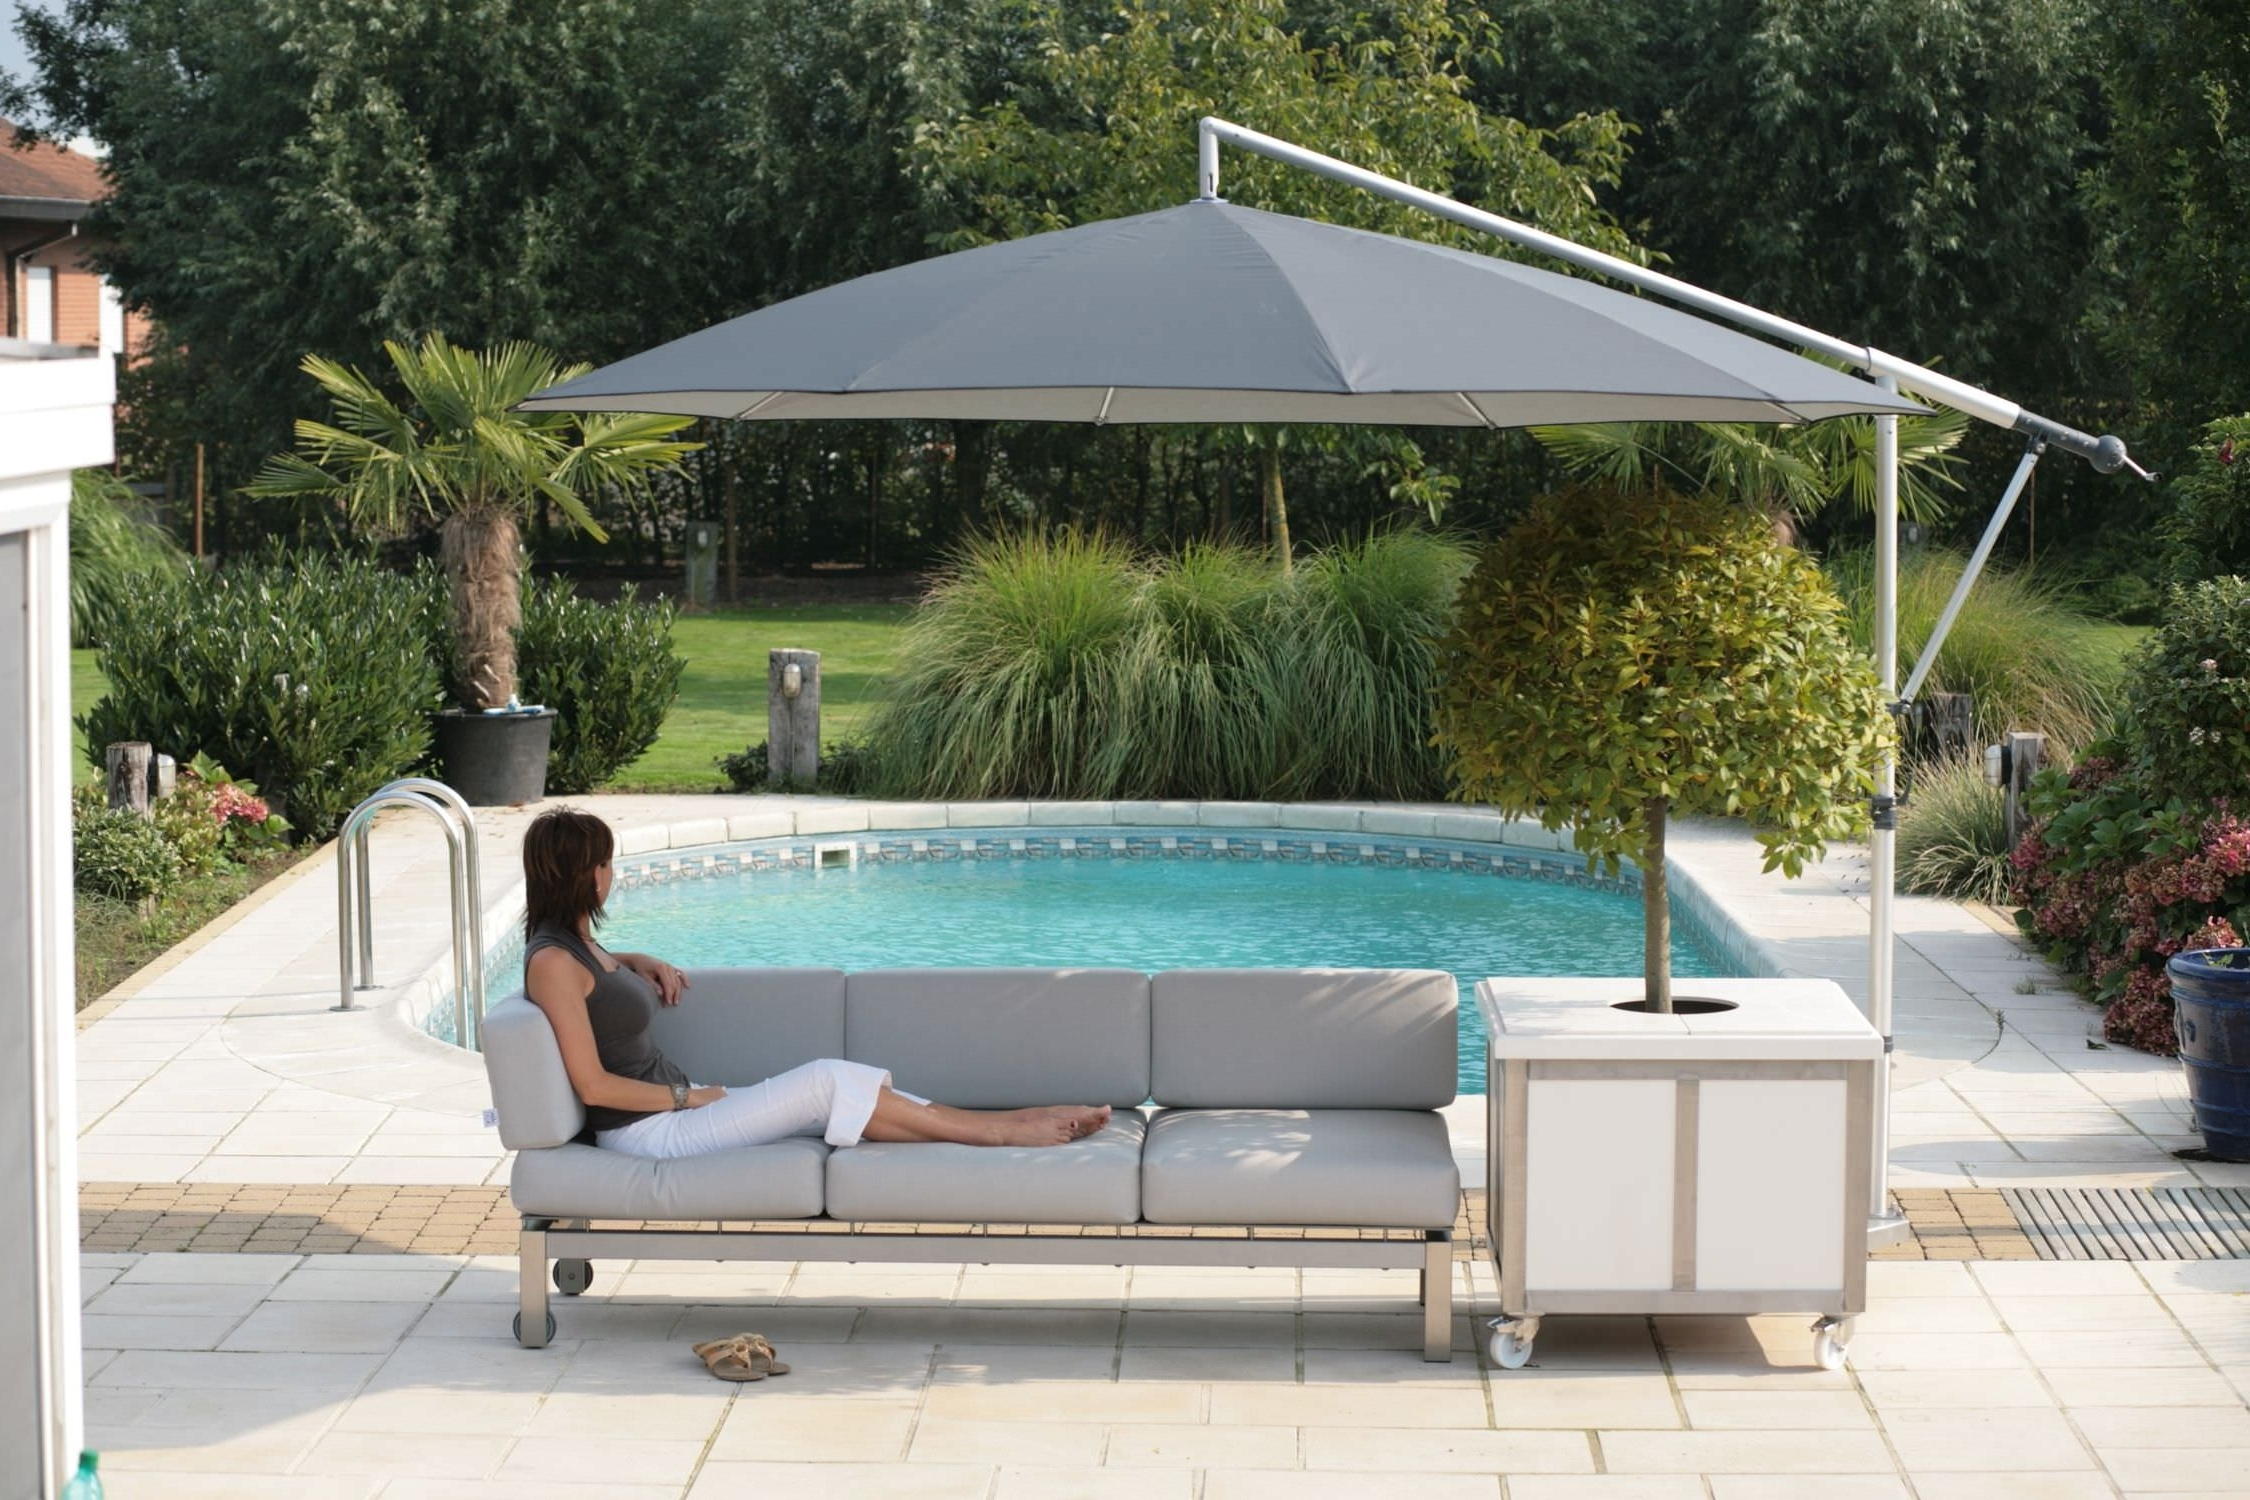 2018 Offset Patio Umbrellas With Base Within Offset Patio Umbrella Base Weights : Offset Patio Umbrella And A (Gallery 5 of 20)